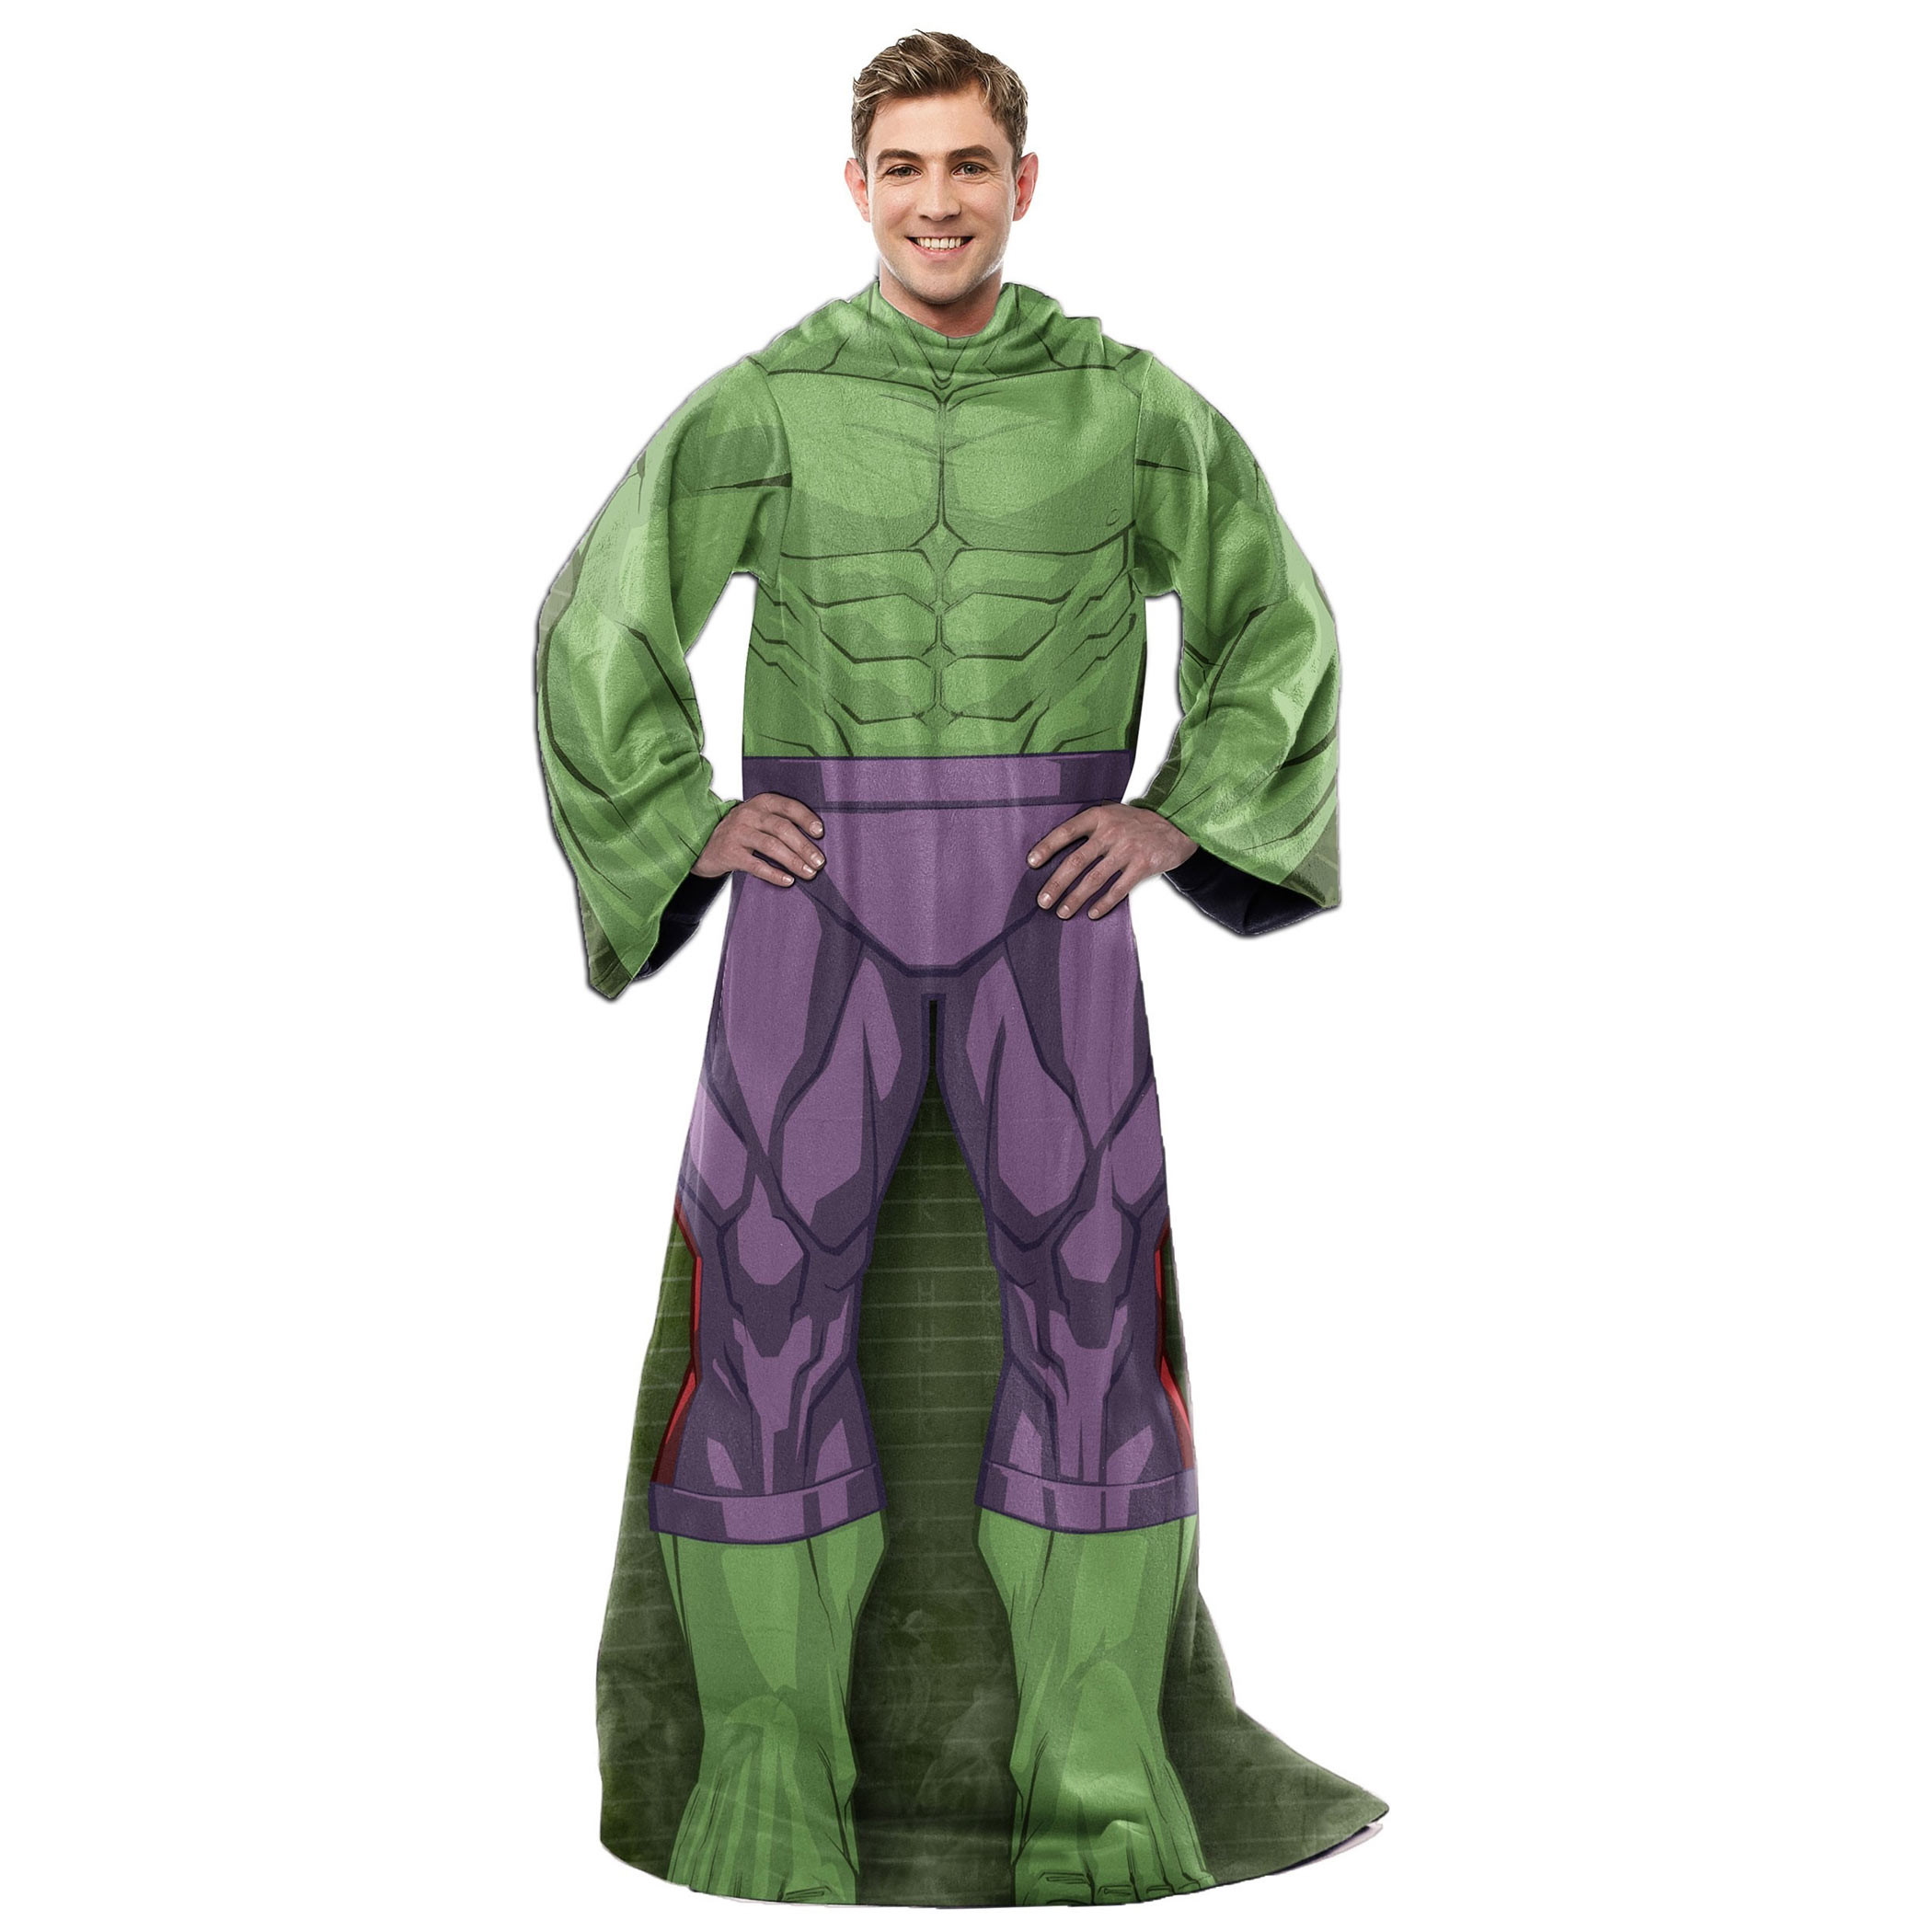 Incredible Hulk Costume Adult Throw Blanket With Sleeves